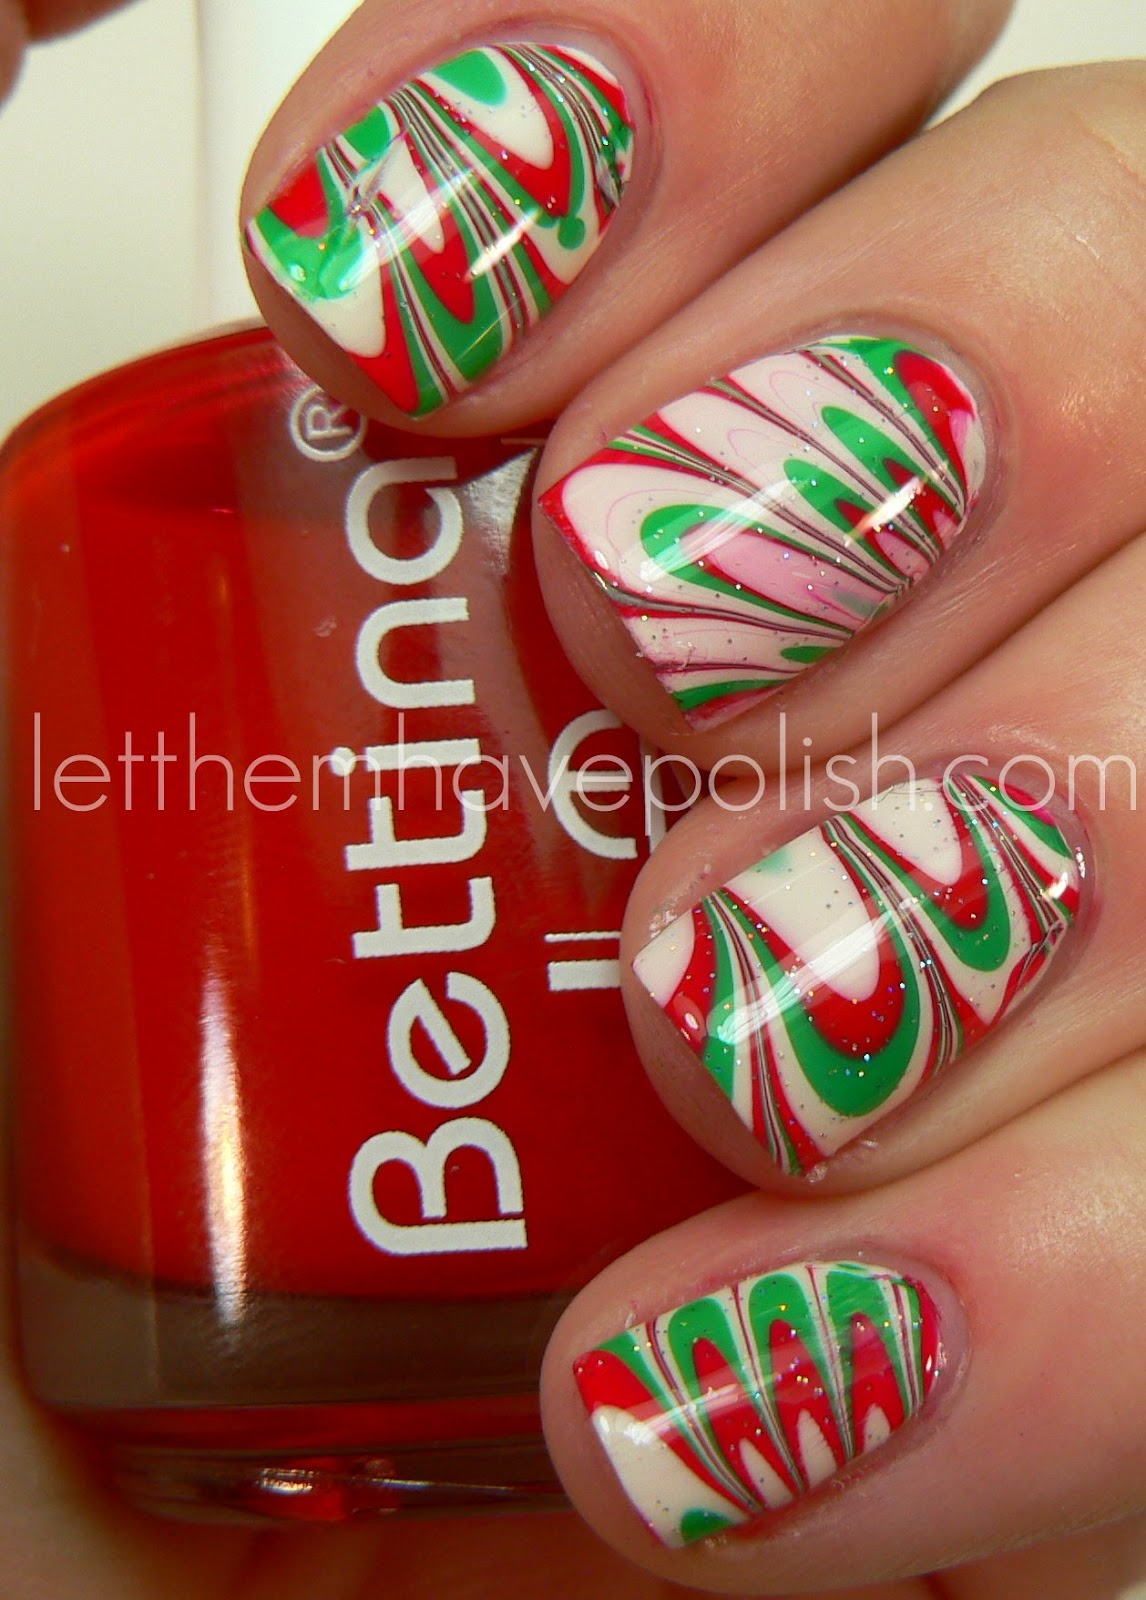 Christmas Nail Art French Manicure Red With White: Let Them Have Polish!: Merry Christmas!!! Holiday